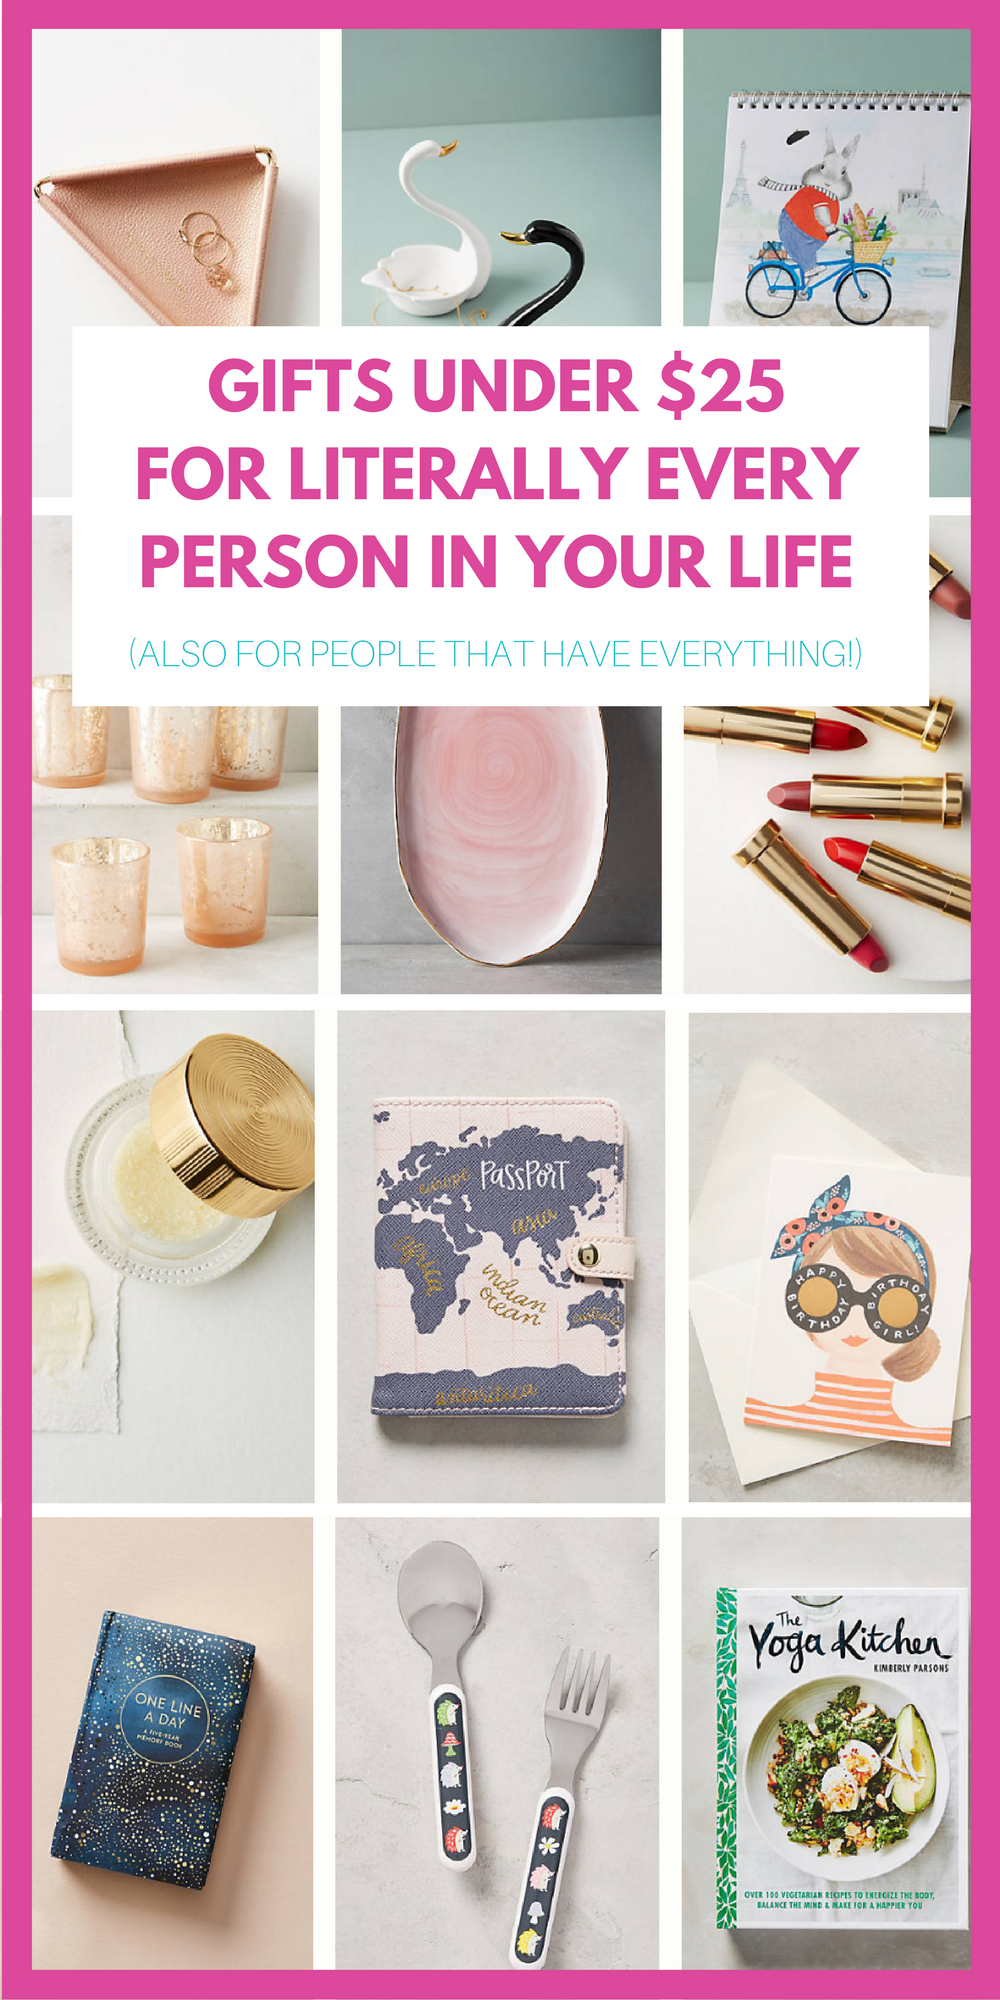 Amazing gifts for literally every person in your life under $25 (1)